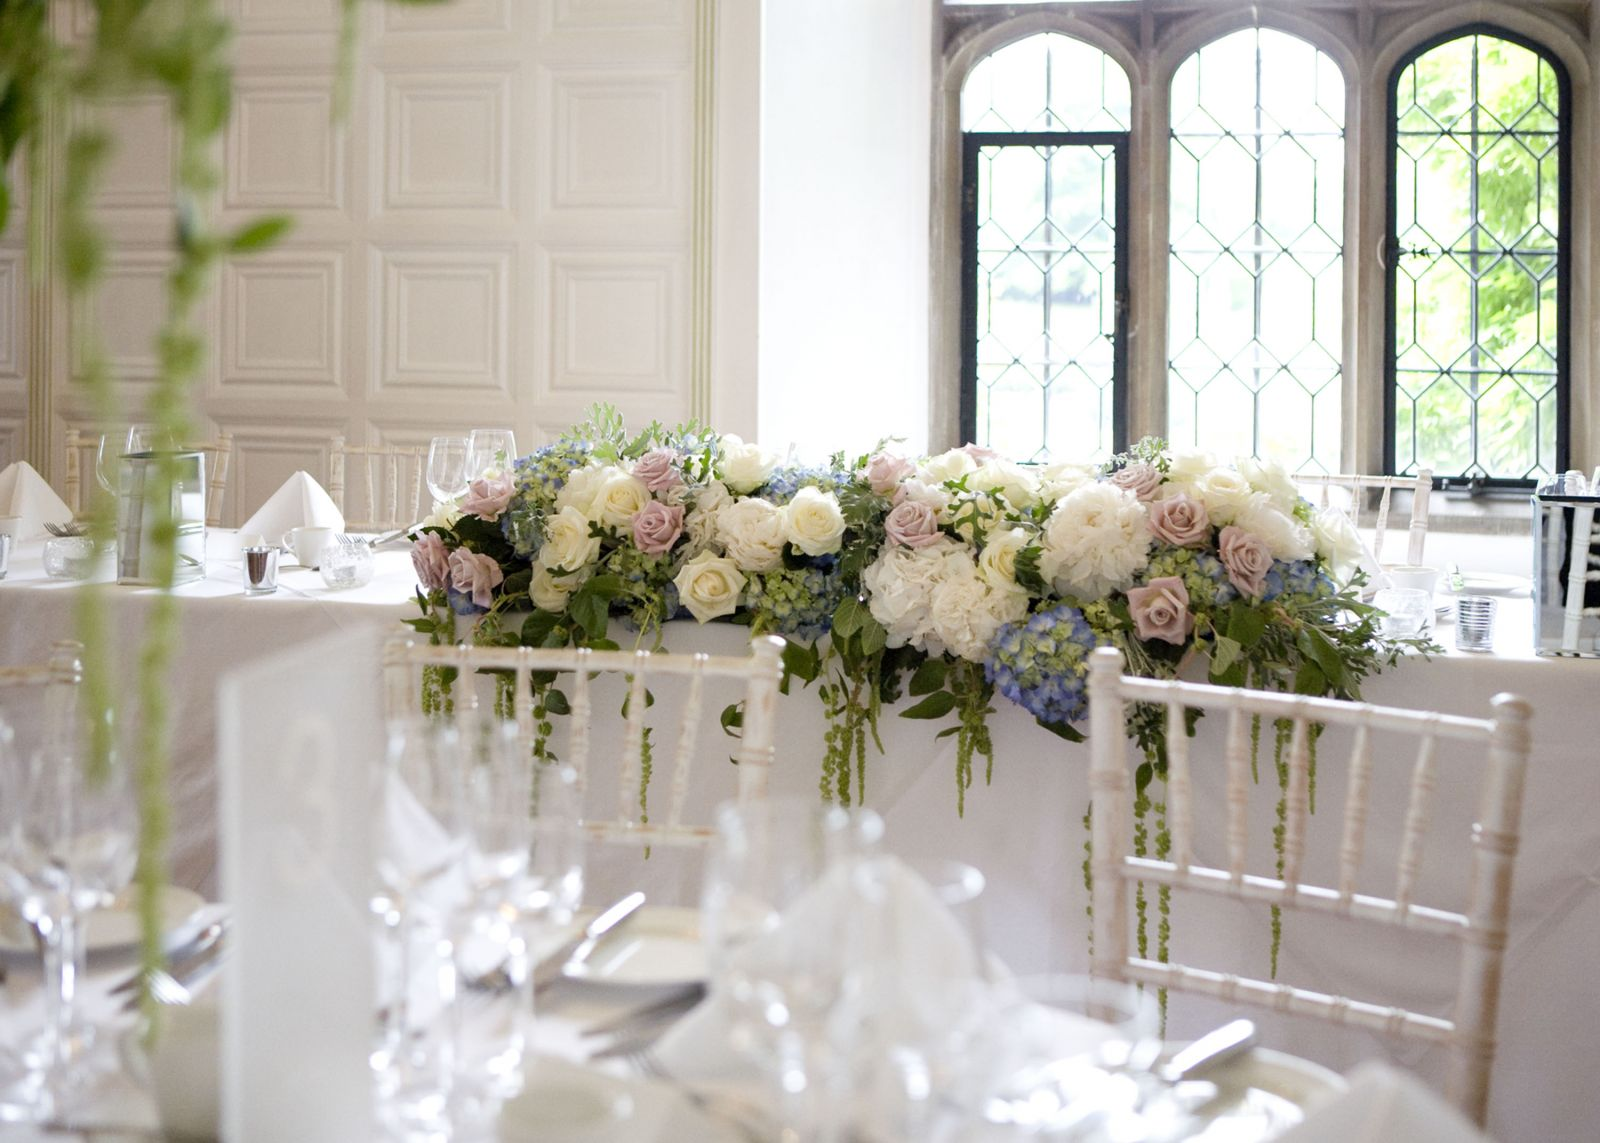 Wedding Flowers - How to style your Top Table • Our Blog • Jades ...